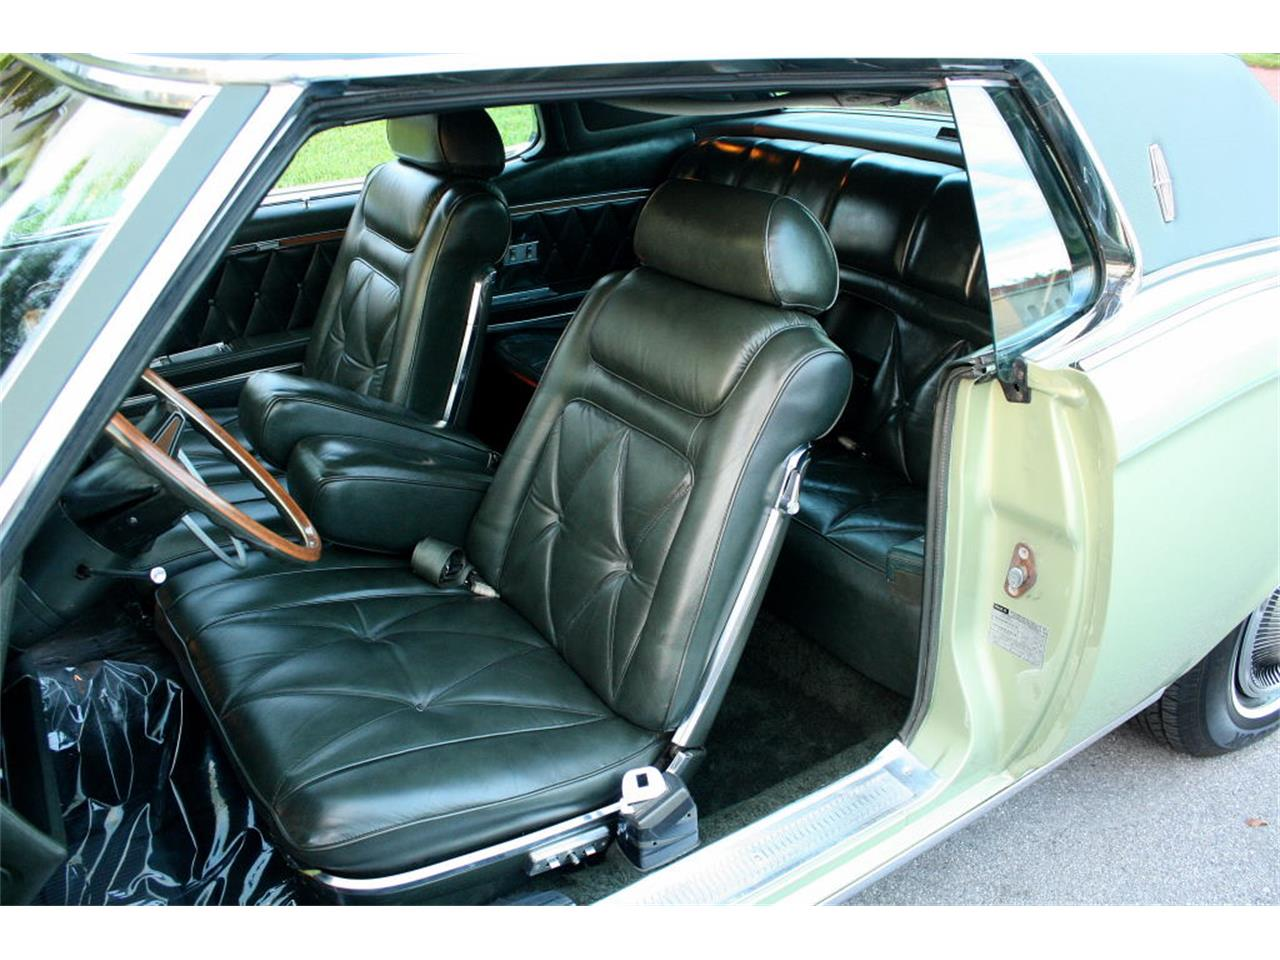 Large Picture of Classic 1969 Lincoln Continental Mark III located in Lakeland Florida Offered by MJC Classic Cars - OPDW